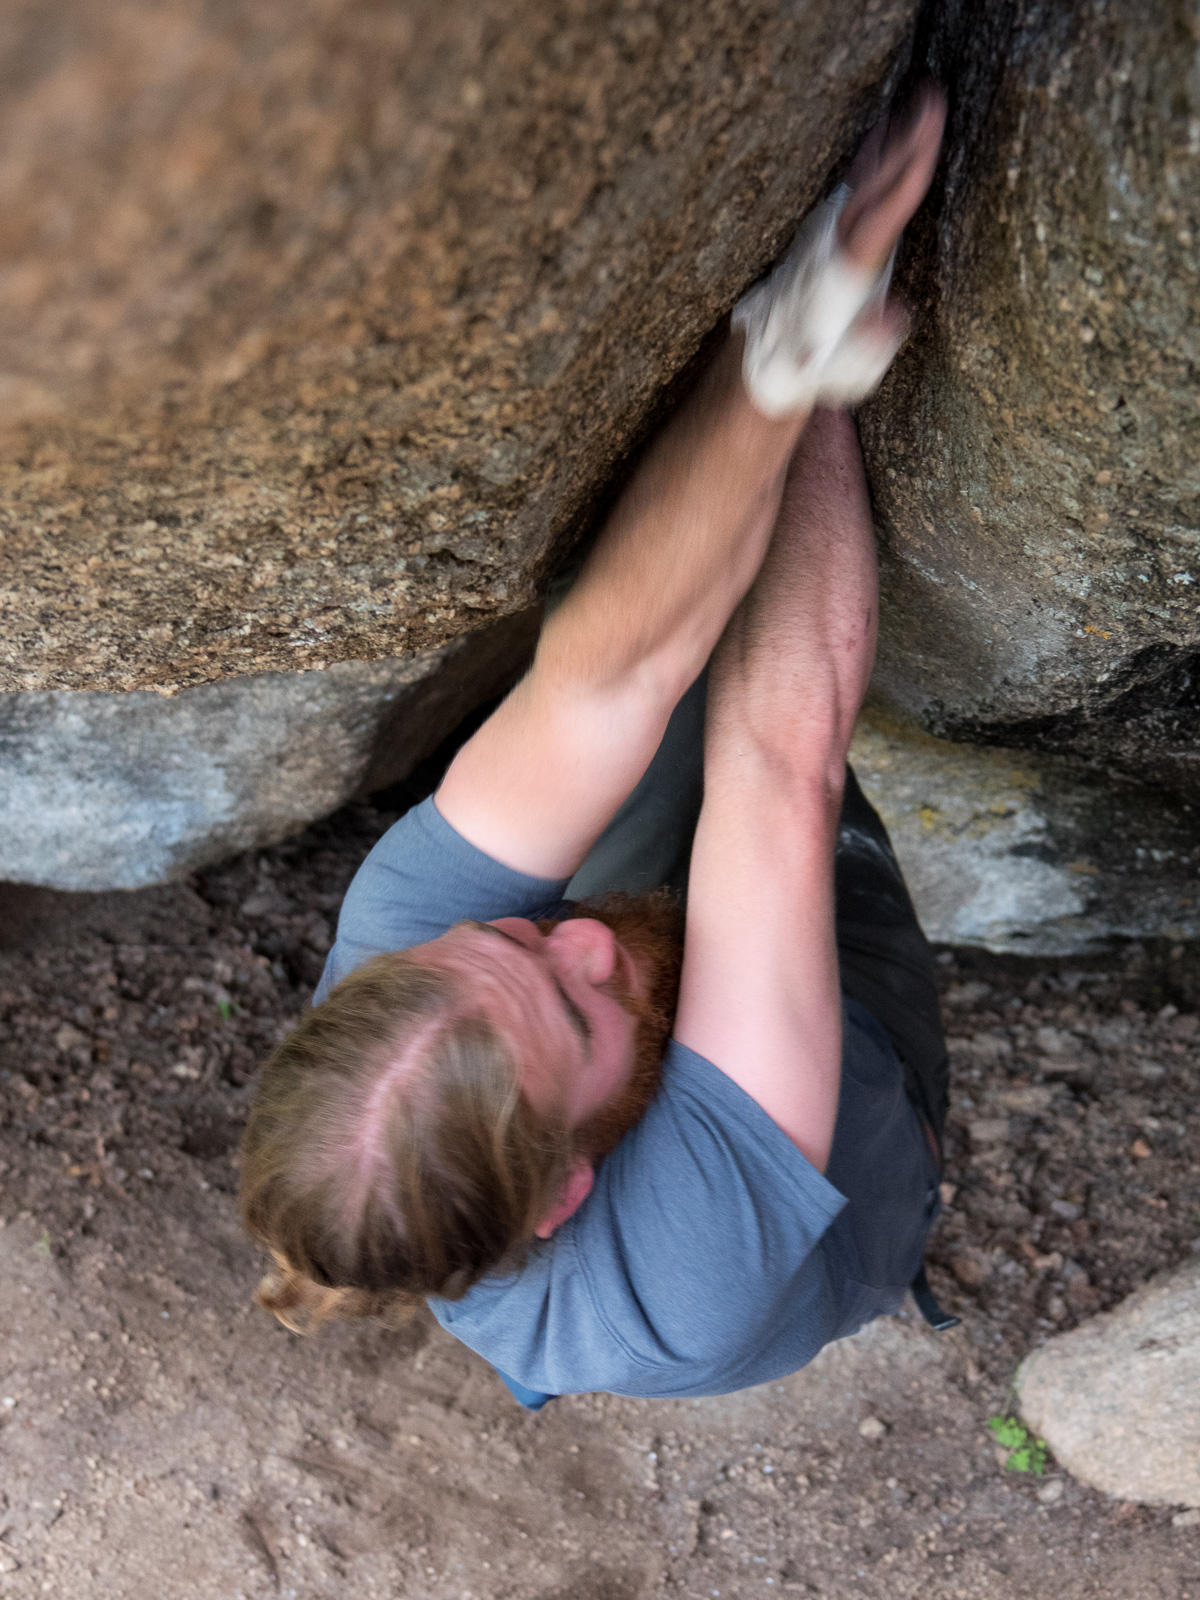 Ken Hilton on Beer Crack, V3